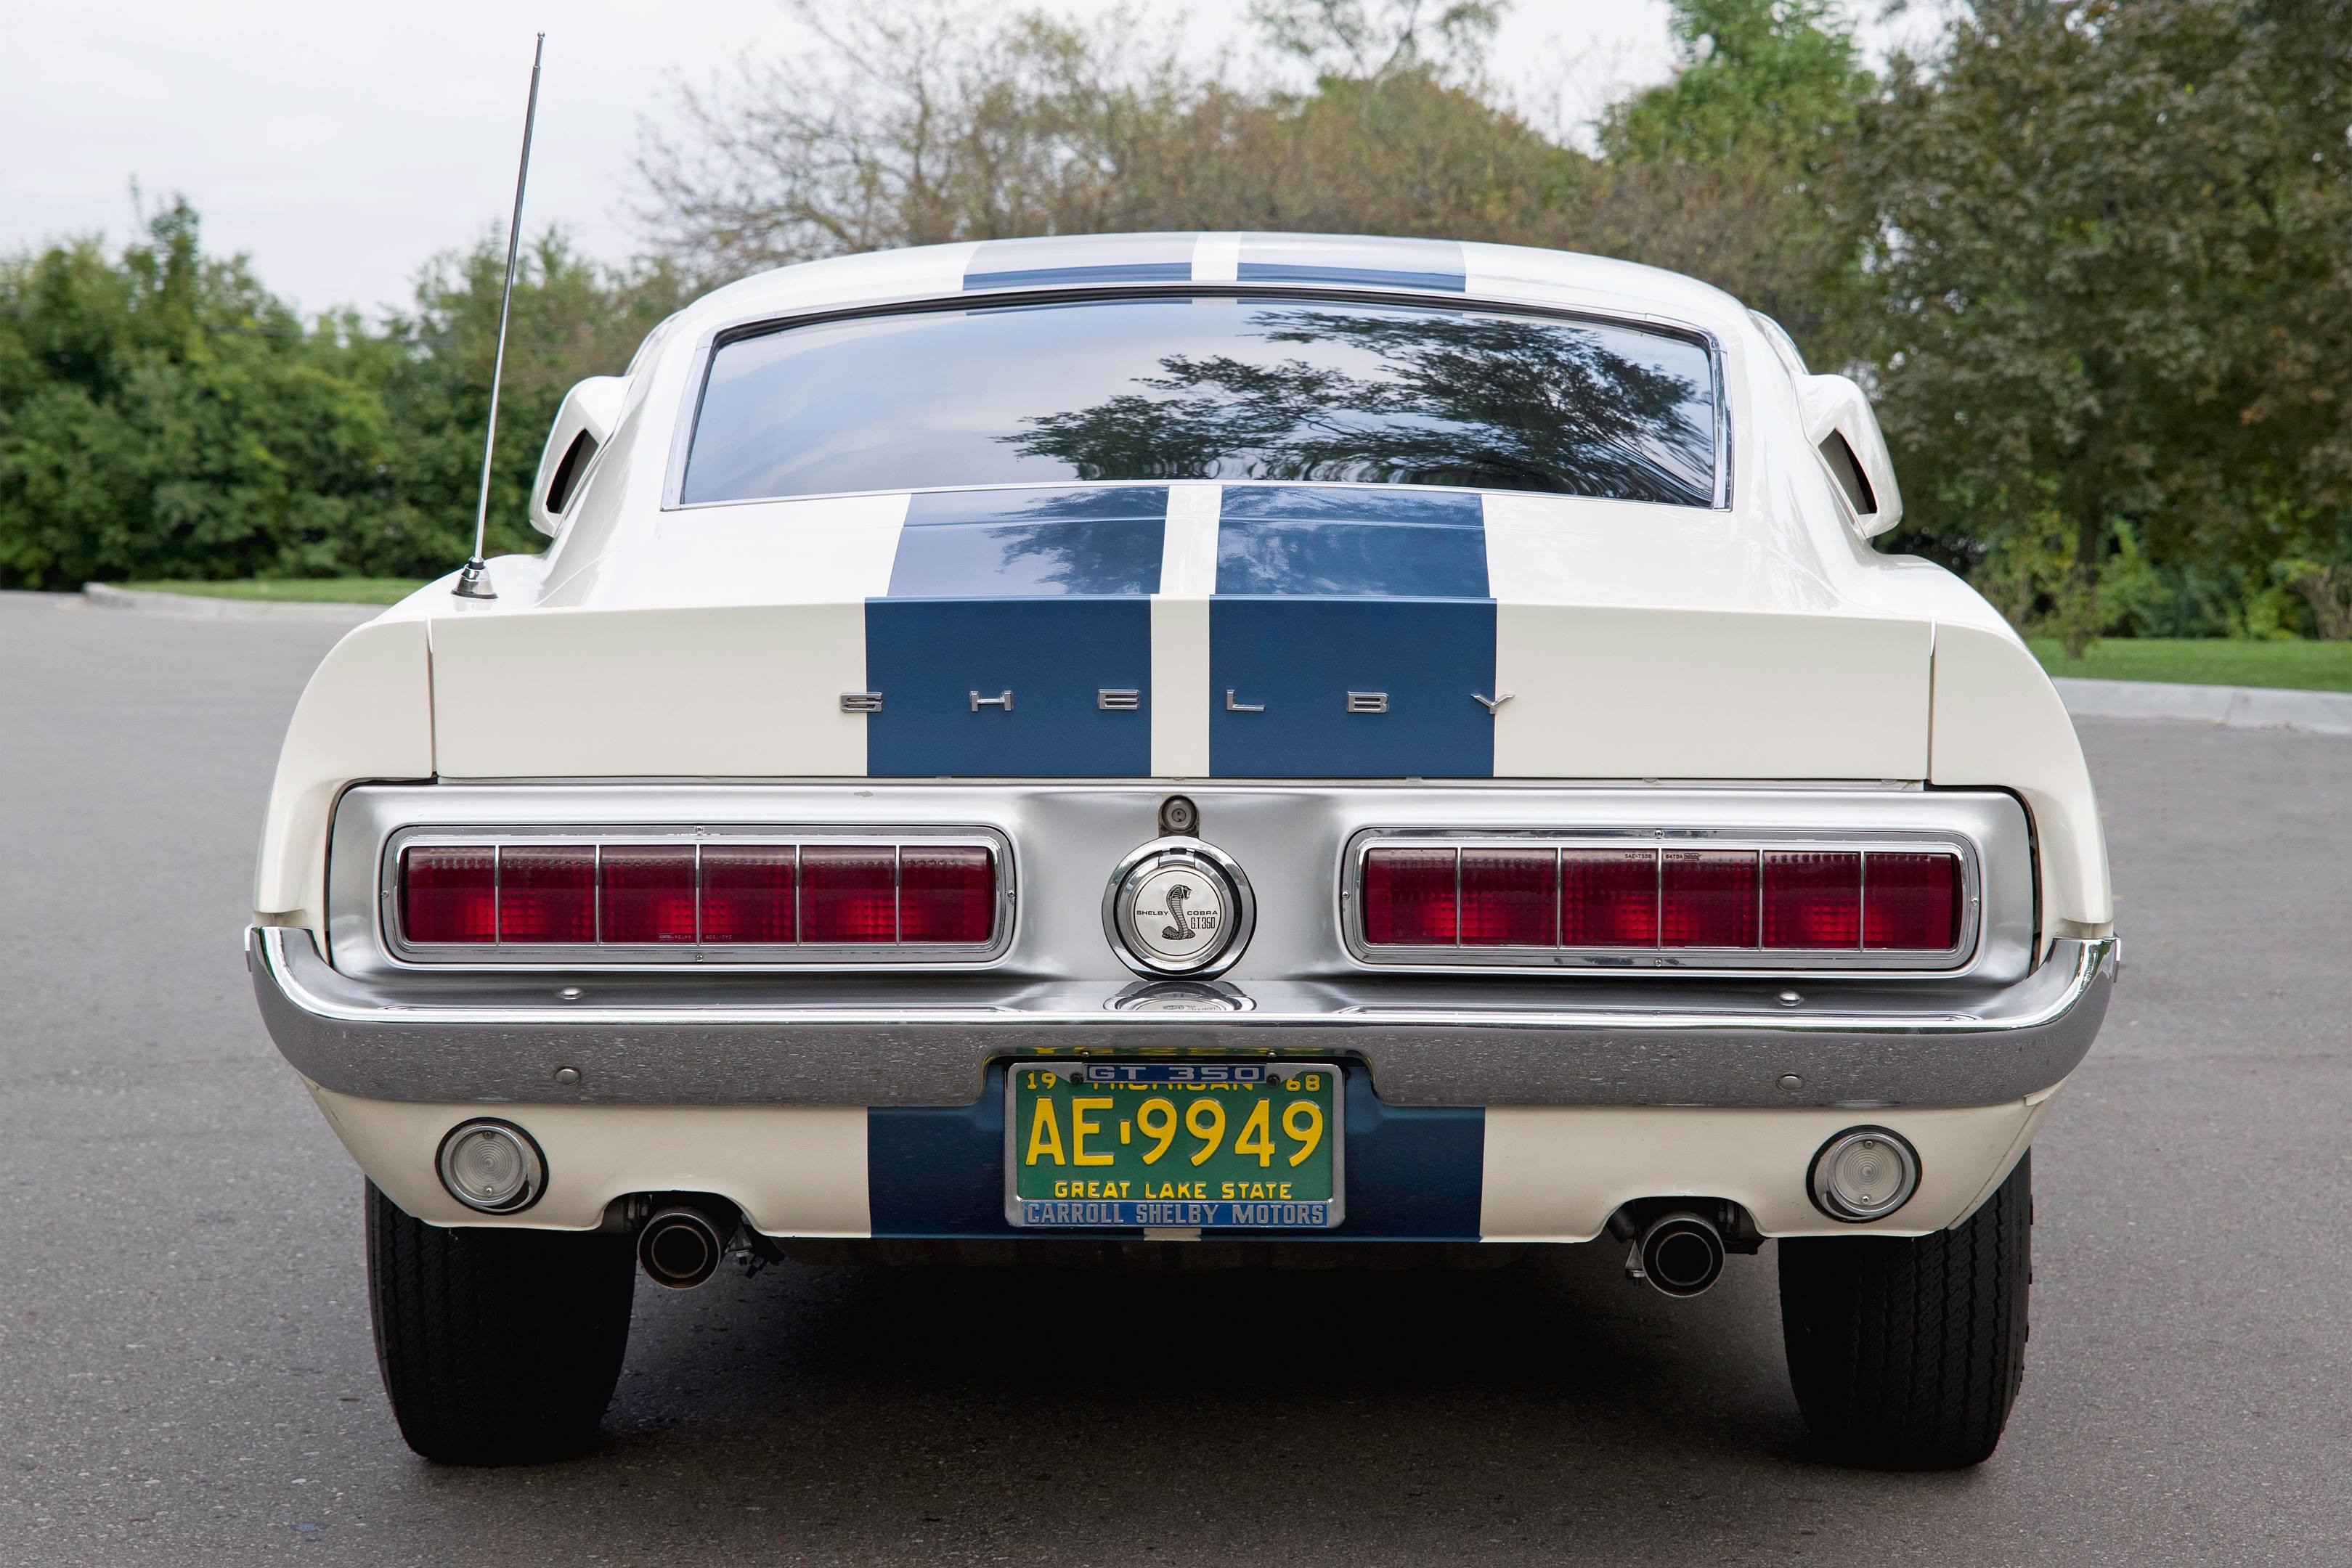 The Shelby Snake gas cap is another distinctive touch. Michigan law allows model-year plates for historic cars that are not driven regularly.